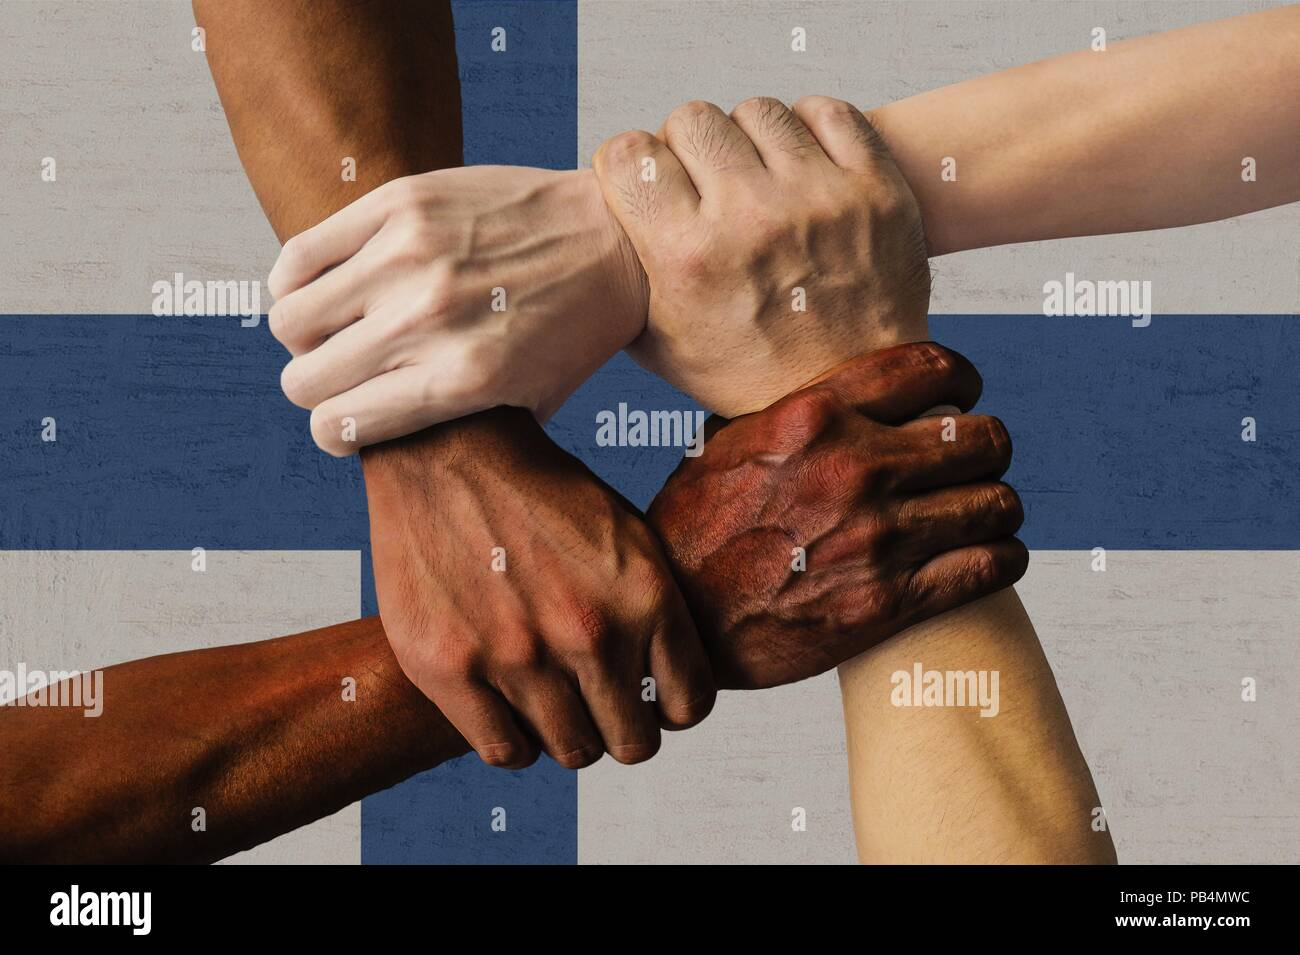 finland flag multicultural group of young people integration diversity isolated. Stock Photo